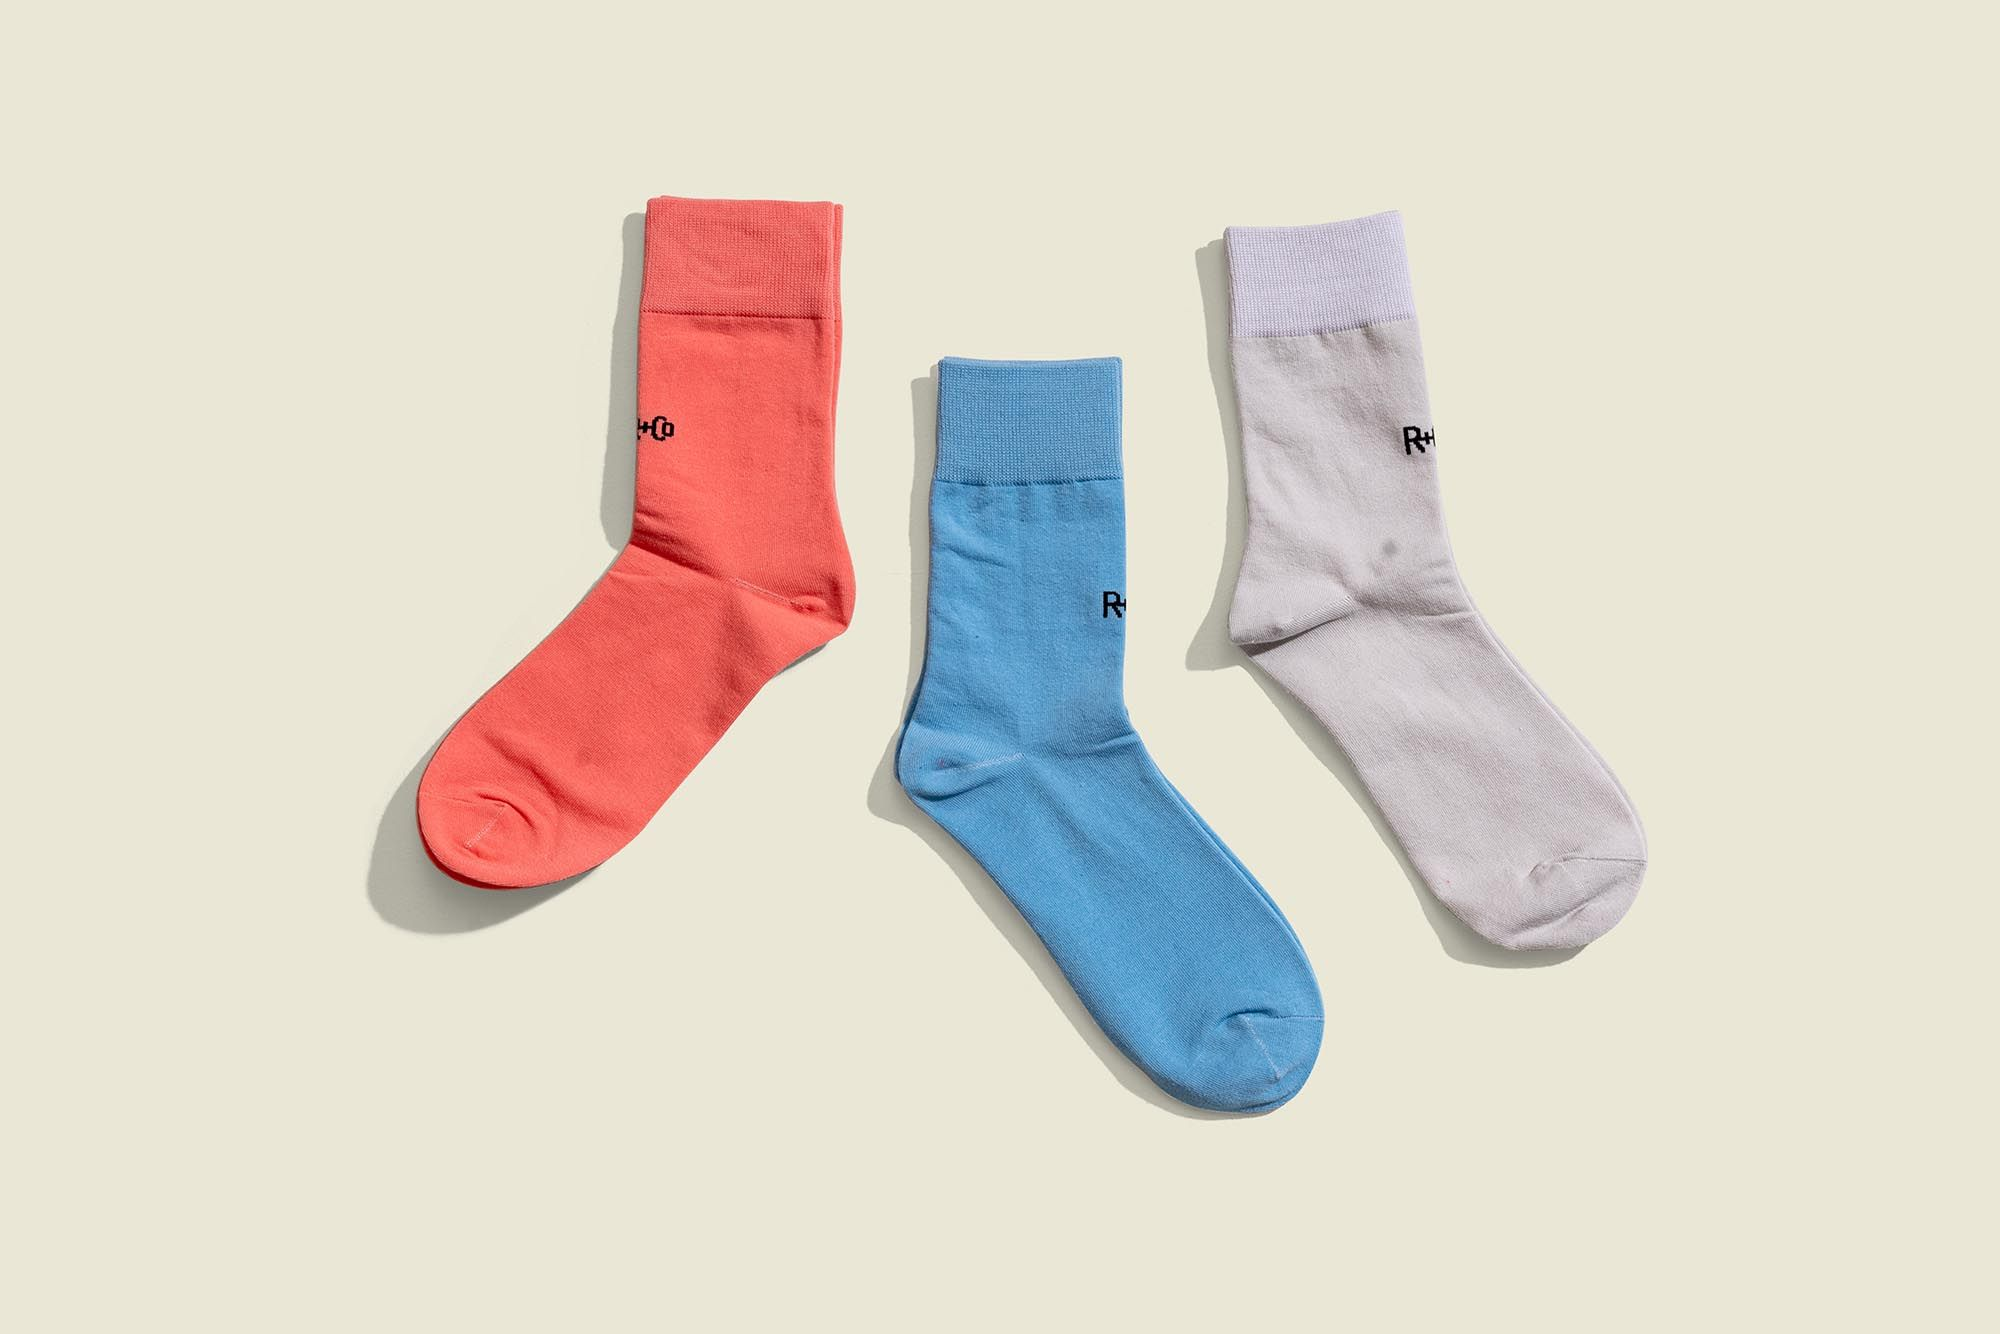 Collection of socks